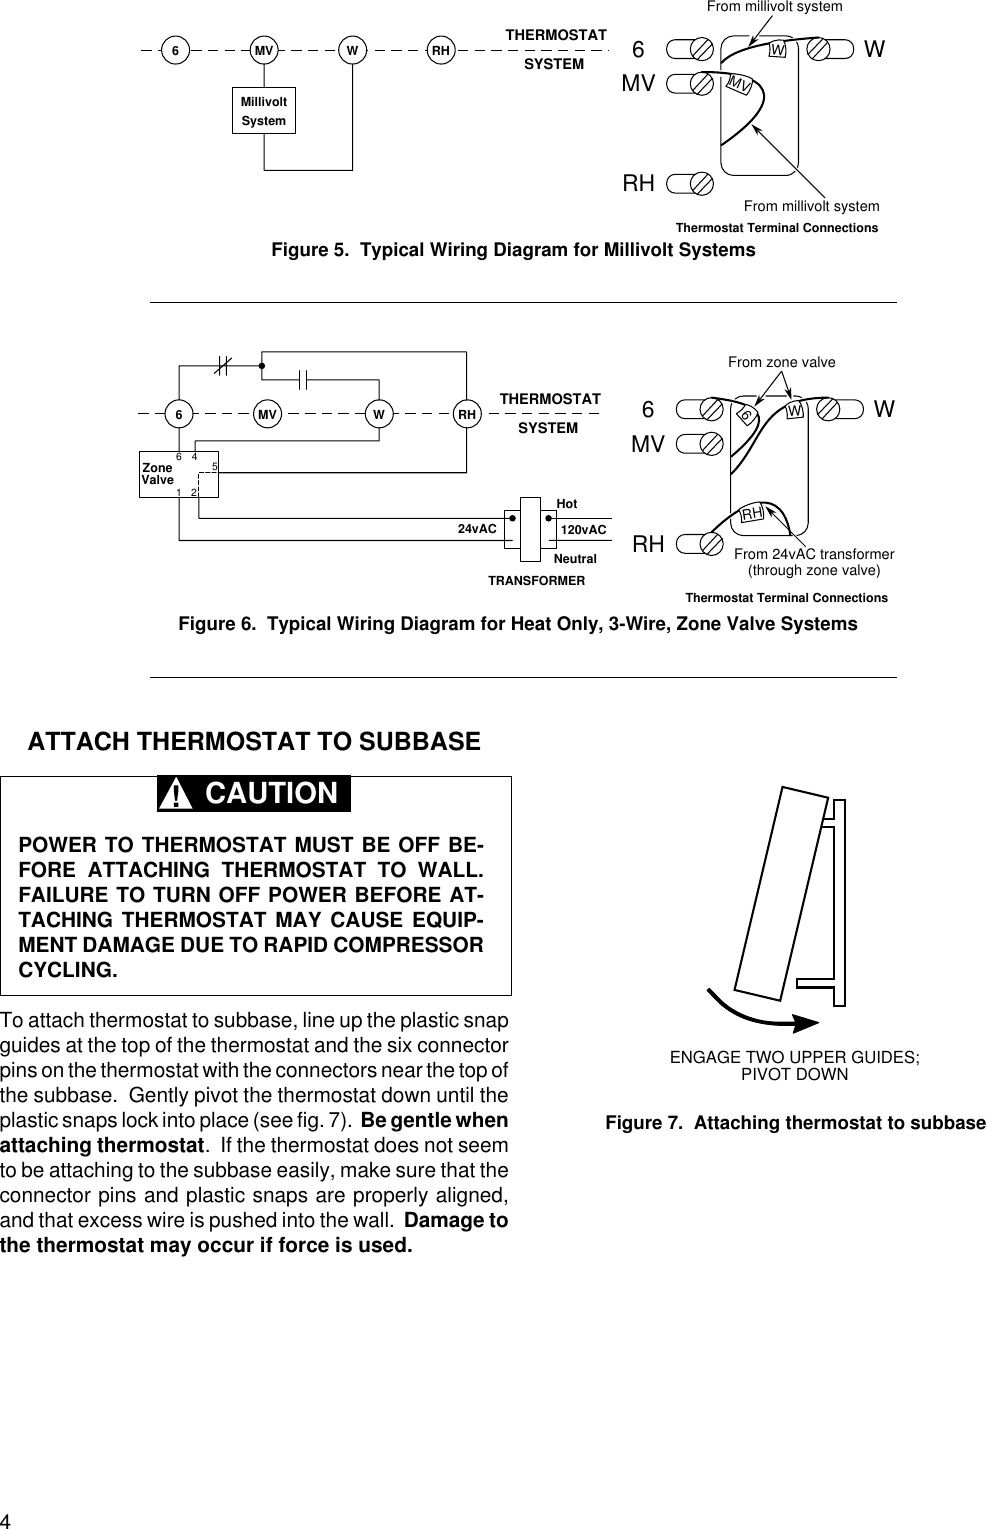 White Rodgers 1f90 60 Users Manual 37 5109a